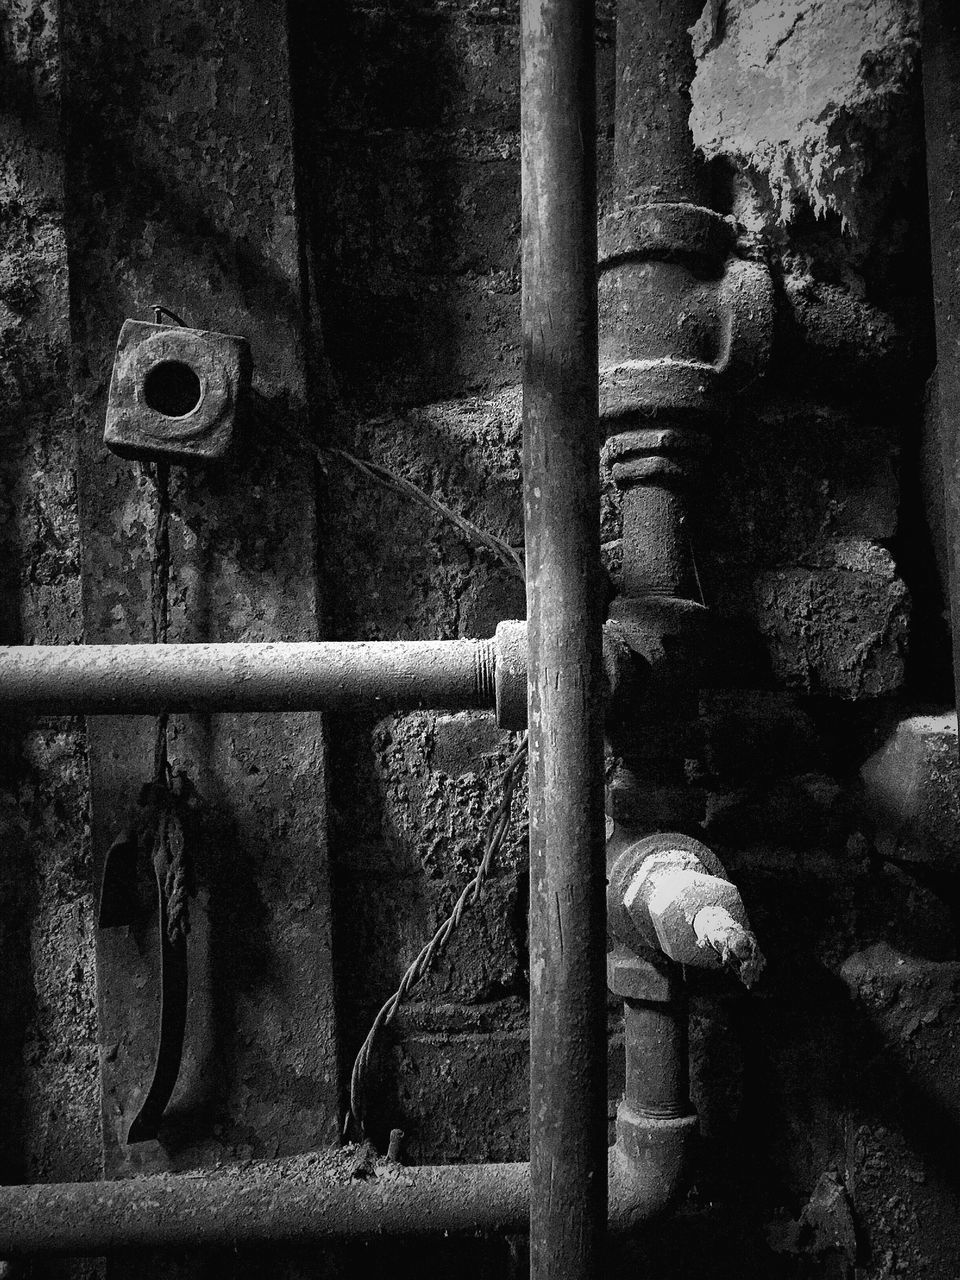 metal, no people, abandoned, day, rusty, close-up, outdoors, prison